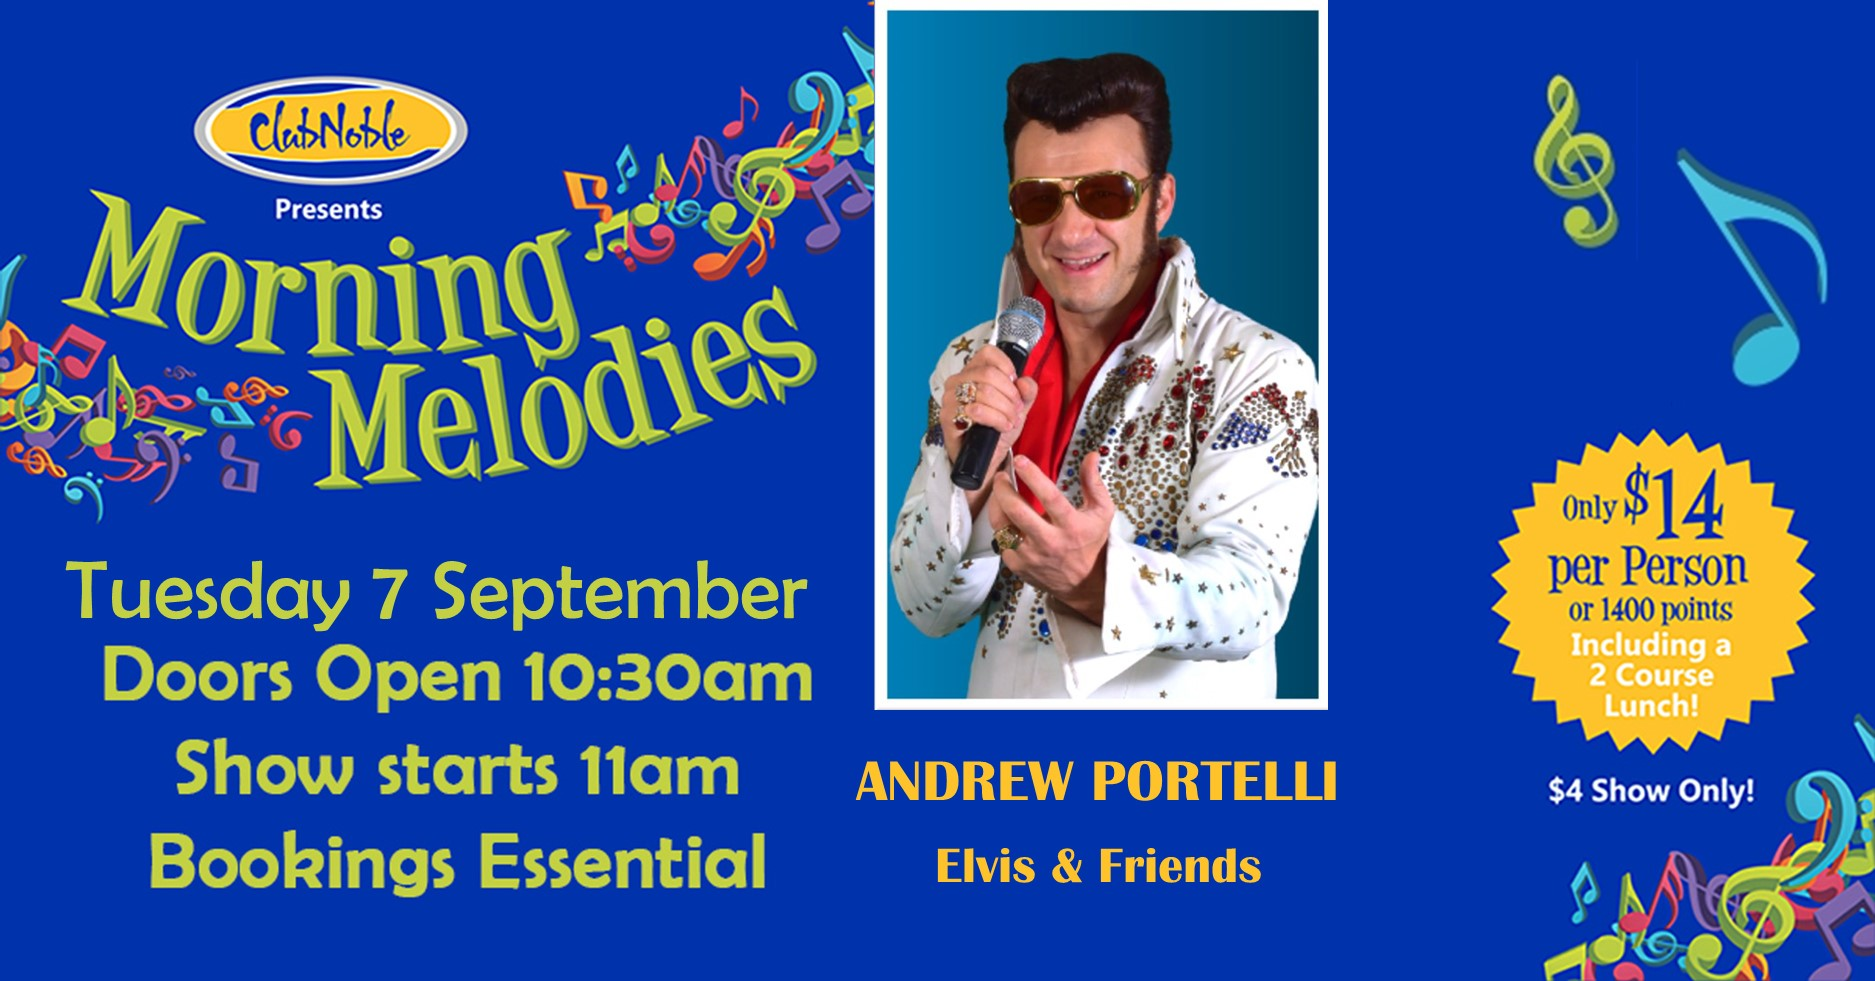 Morning Melodies with Andrew Portelli